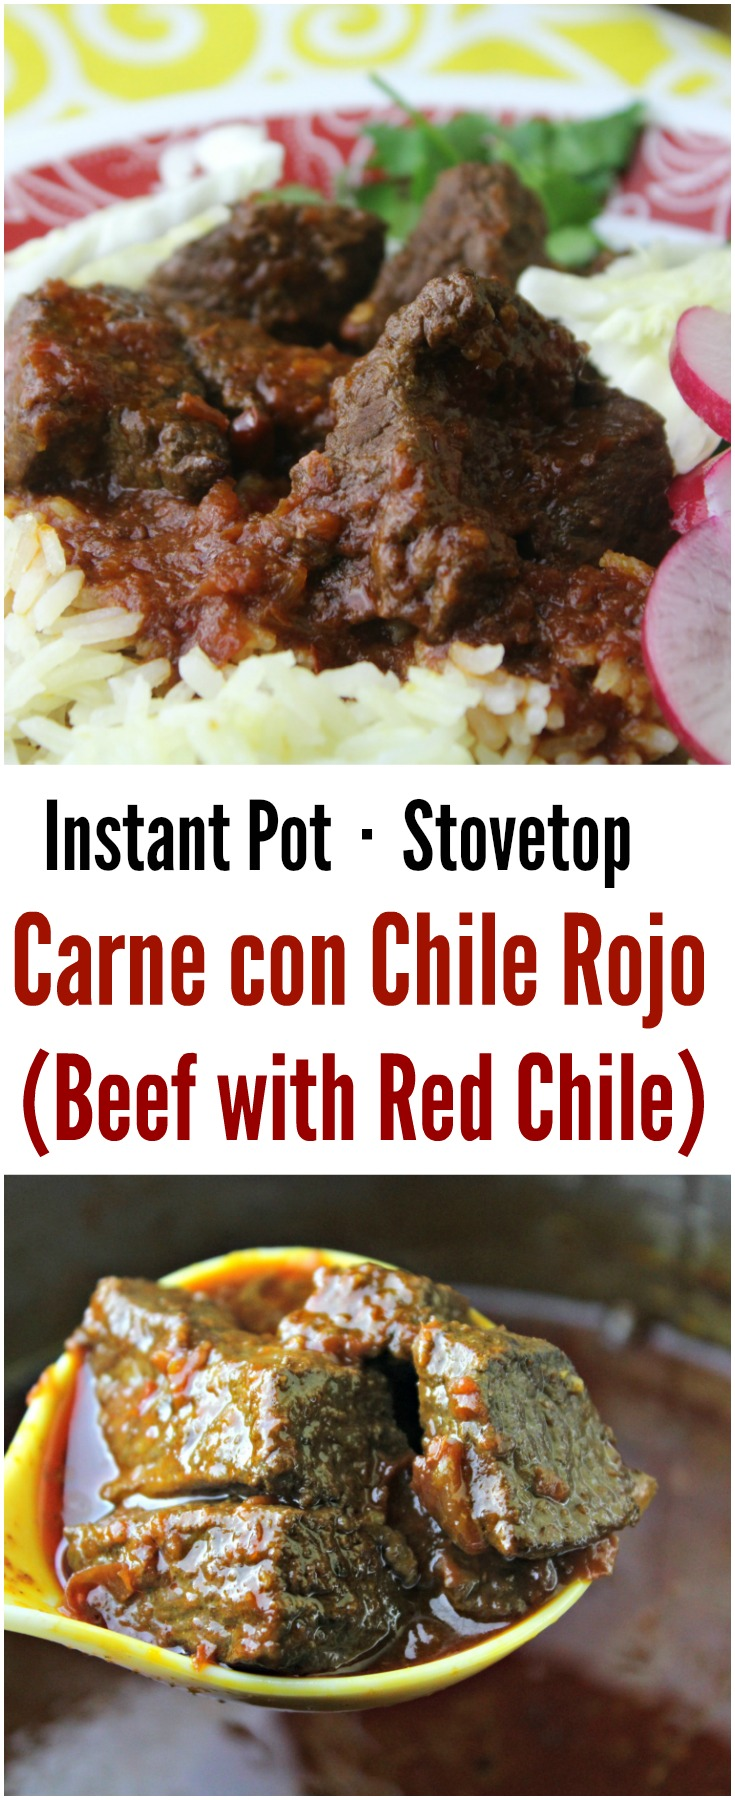 Juicy and soft Carne con Chile Rojo (Beef and Red Chile) cooked up into a deliciously rich, spicy dish suitable for the Instant Pot or stovetop.